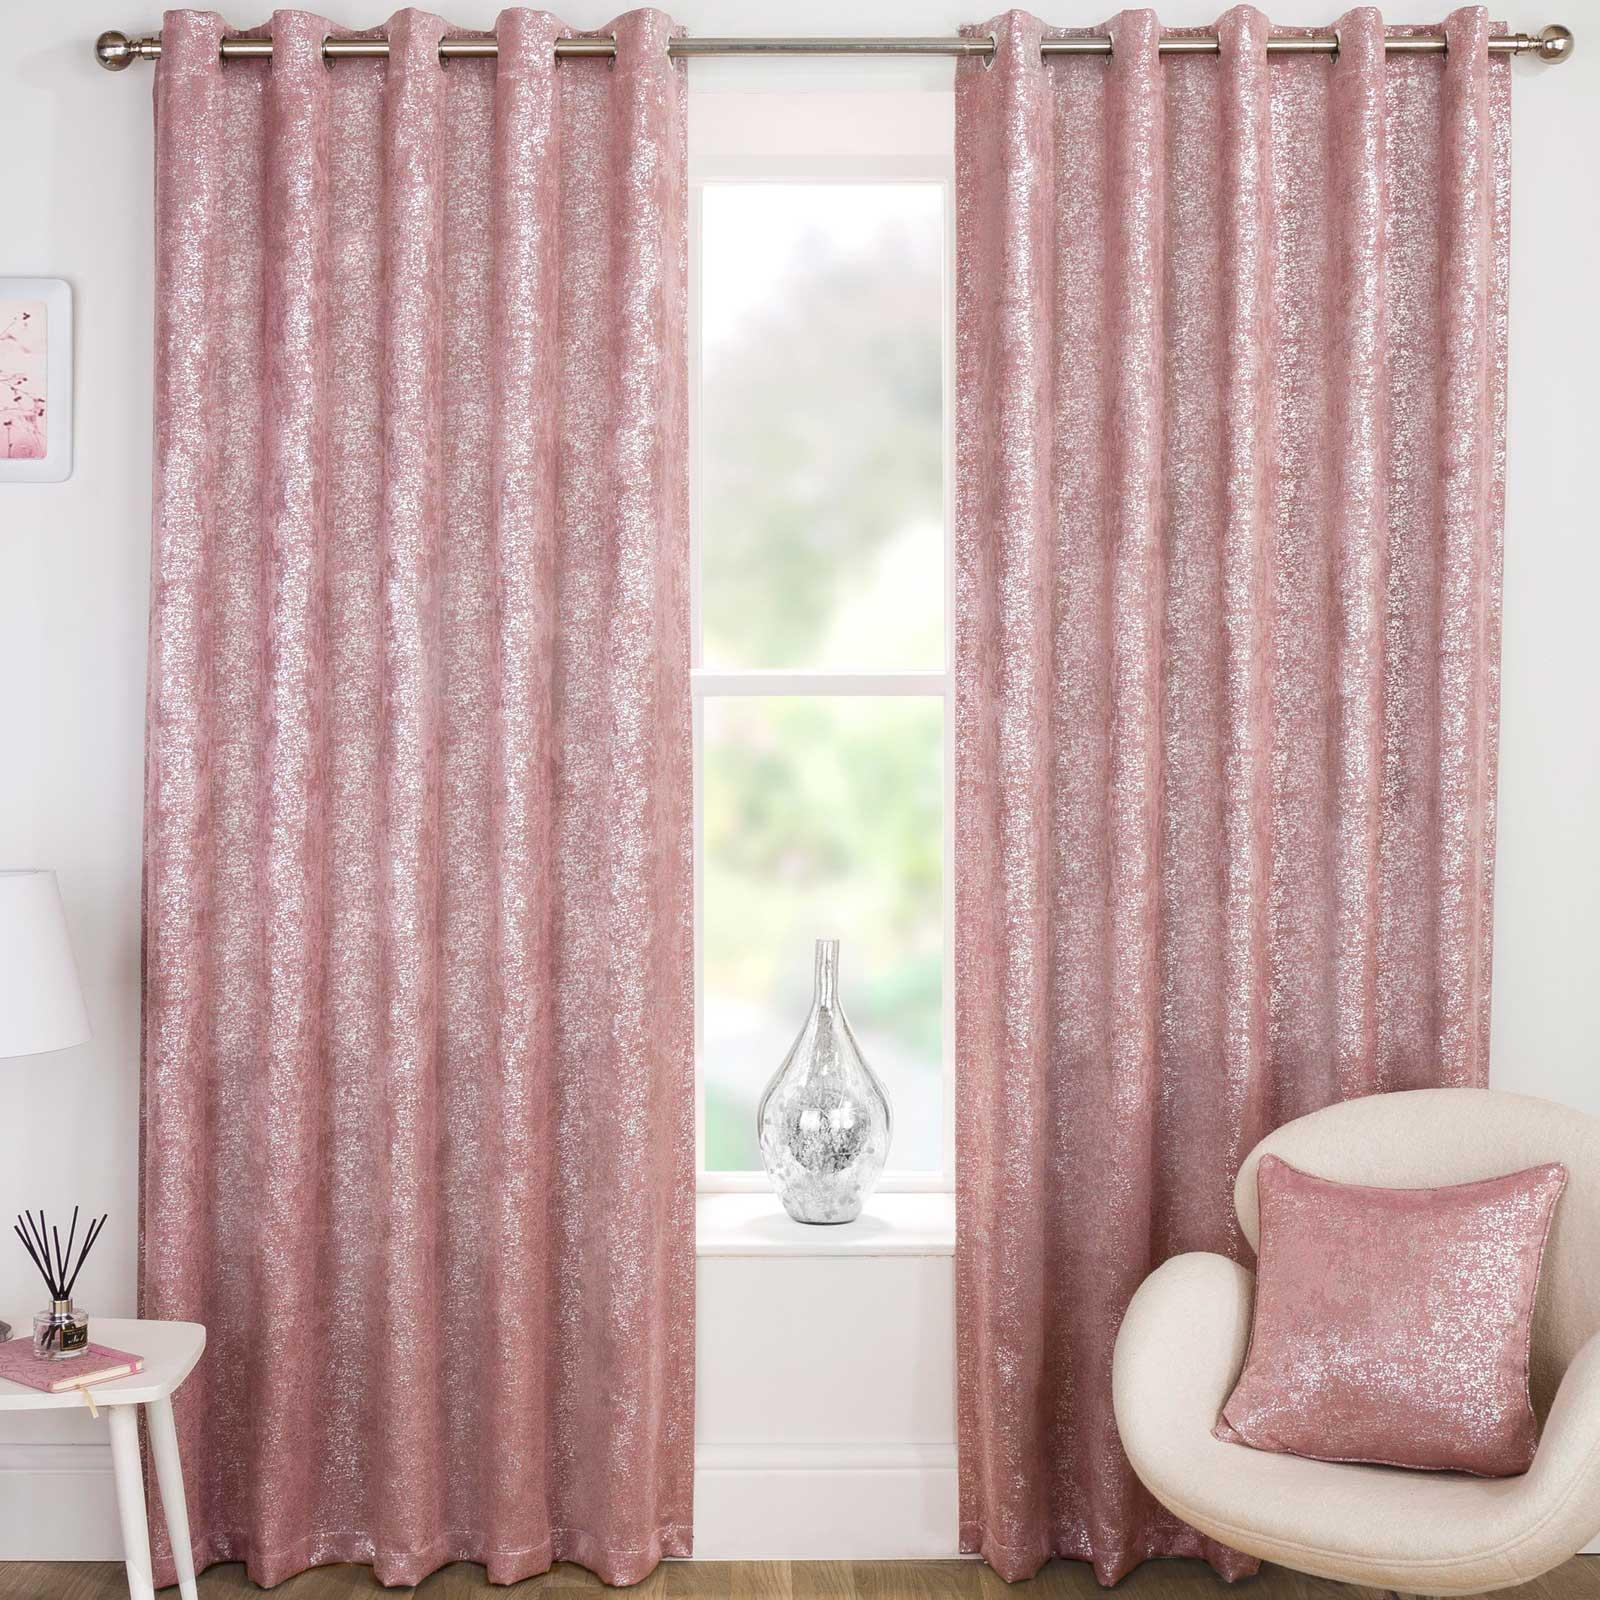 Eyelet Curtains Pink Thermal Block-Out Ready Made Ring Top Curtain Pairs UK